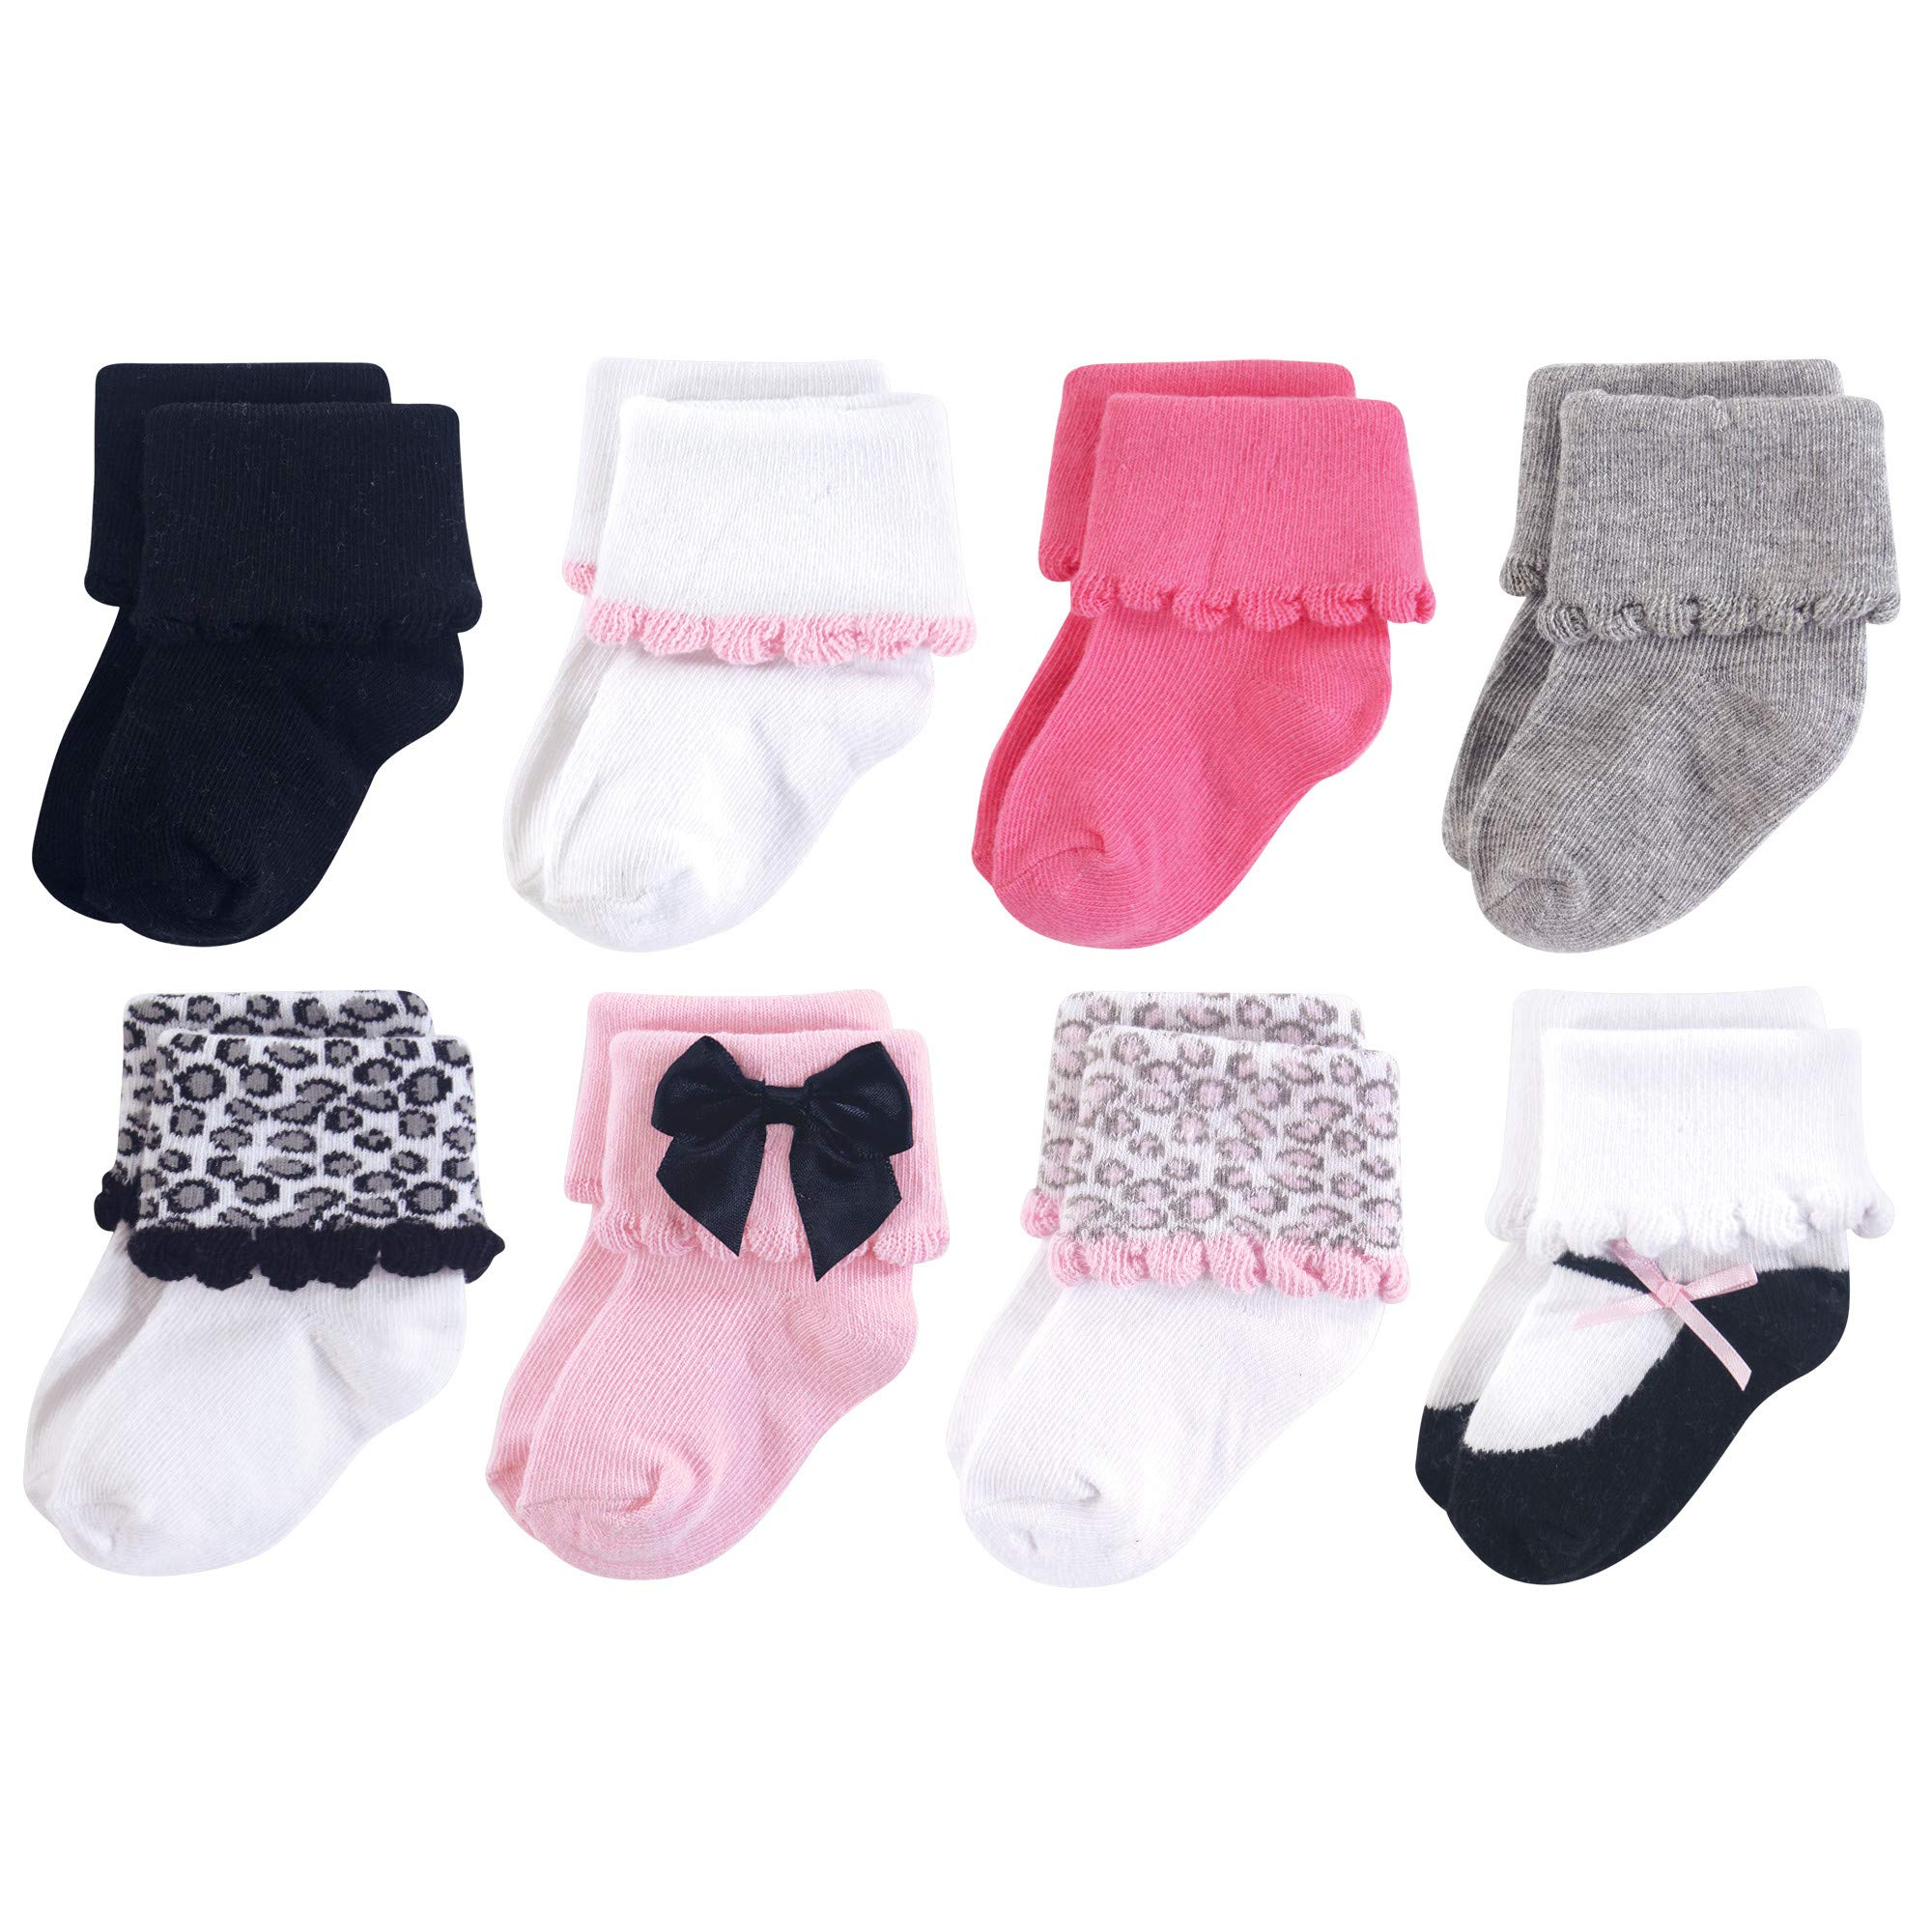 Luvable Friends Baby Basic Socks, Dressy Pink And